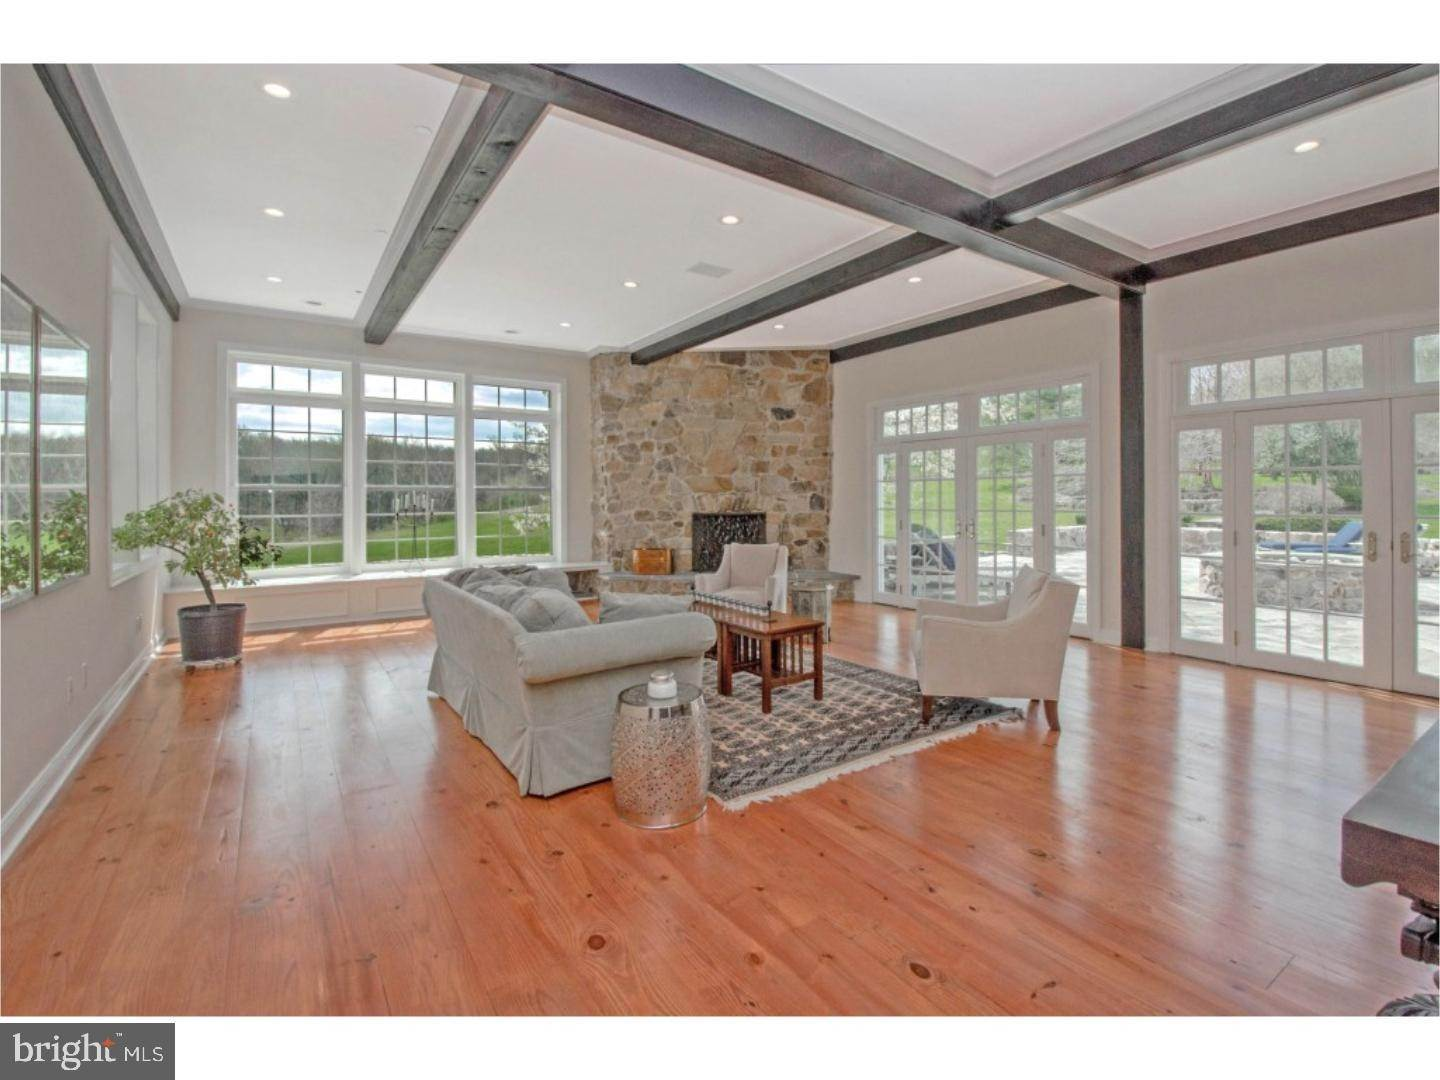 10. Detached House for Sale at 38 HARRISON Drive Newtown Square, Pennsylvania 19073 United States